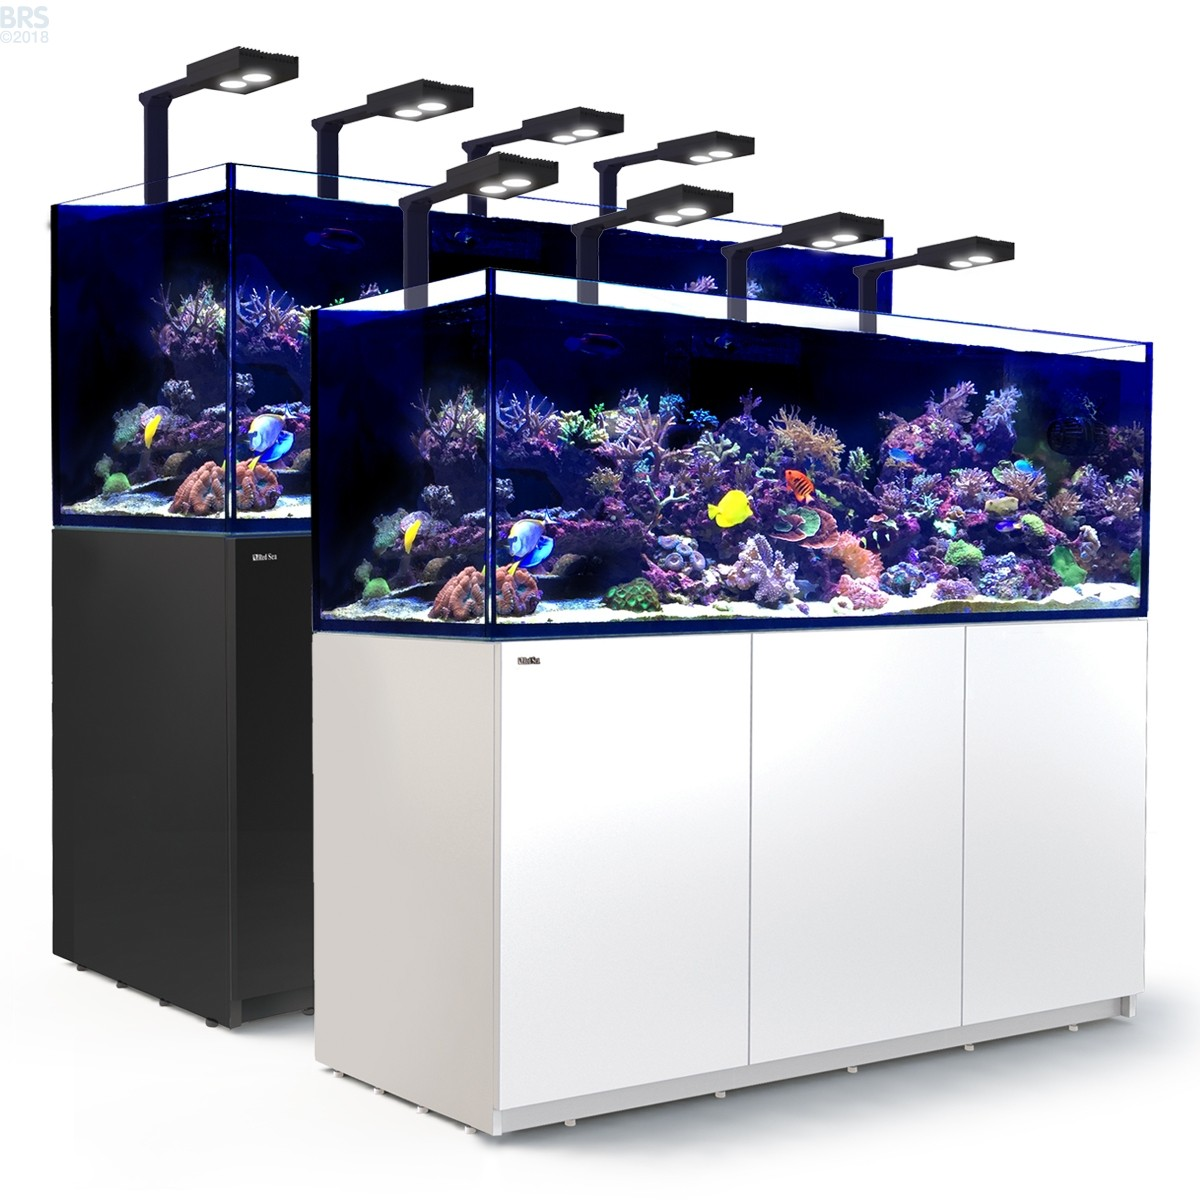 Why does BRS recommend this? The Apex controller is by far one of the most advanced dedicated aquarium controllers on the market today. The wide variety of controllability with the Apex controllers and their easy to use cloud interface makes it a perfect option for a fully automated reef tank.